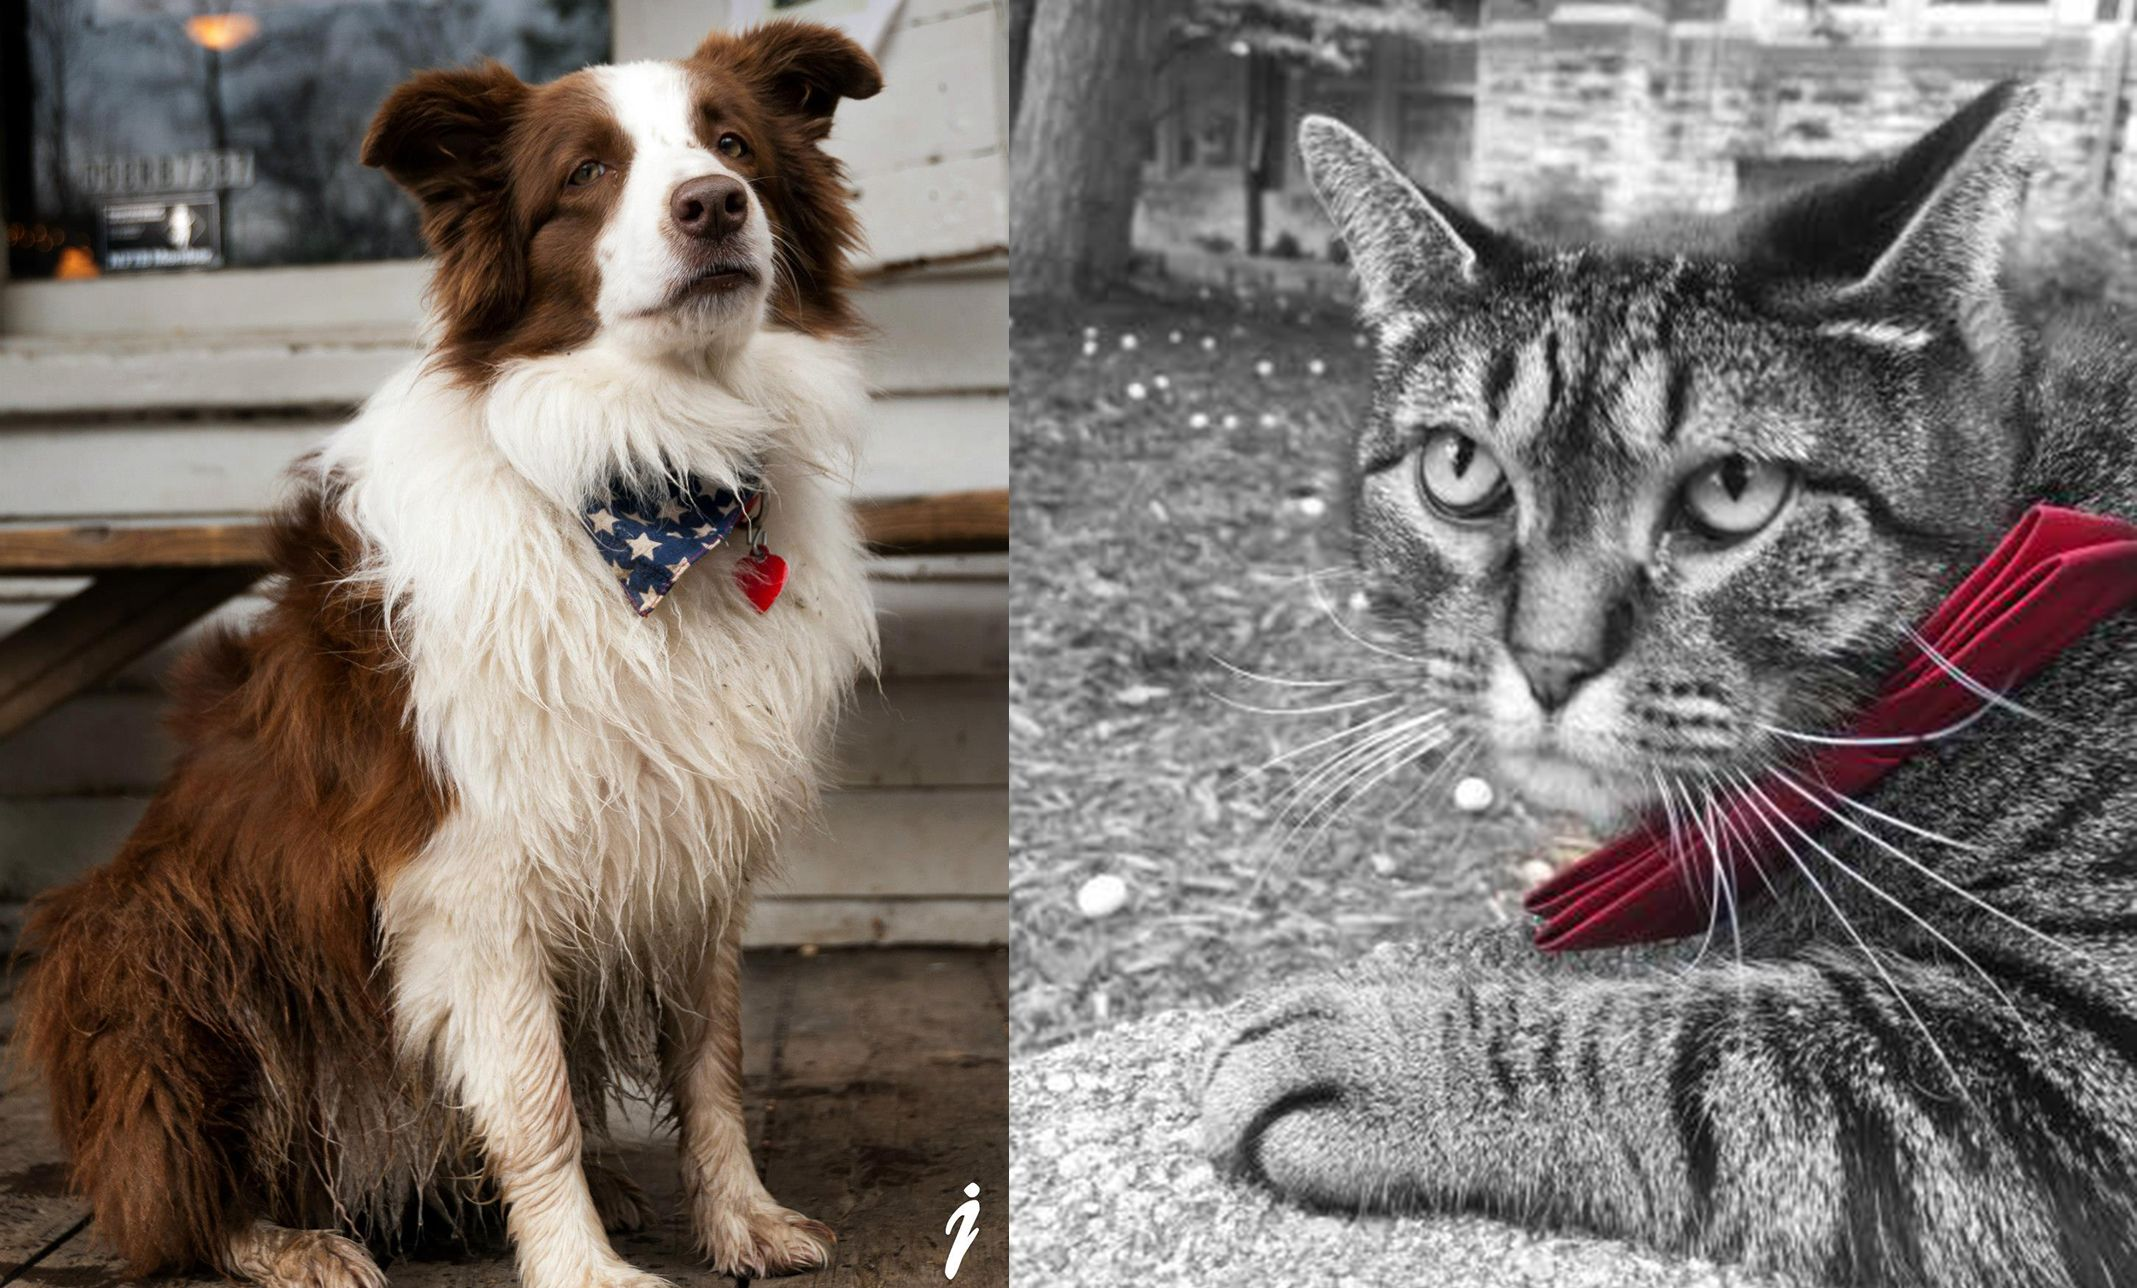 Pets for president? Meet the dog and cat literally running for office